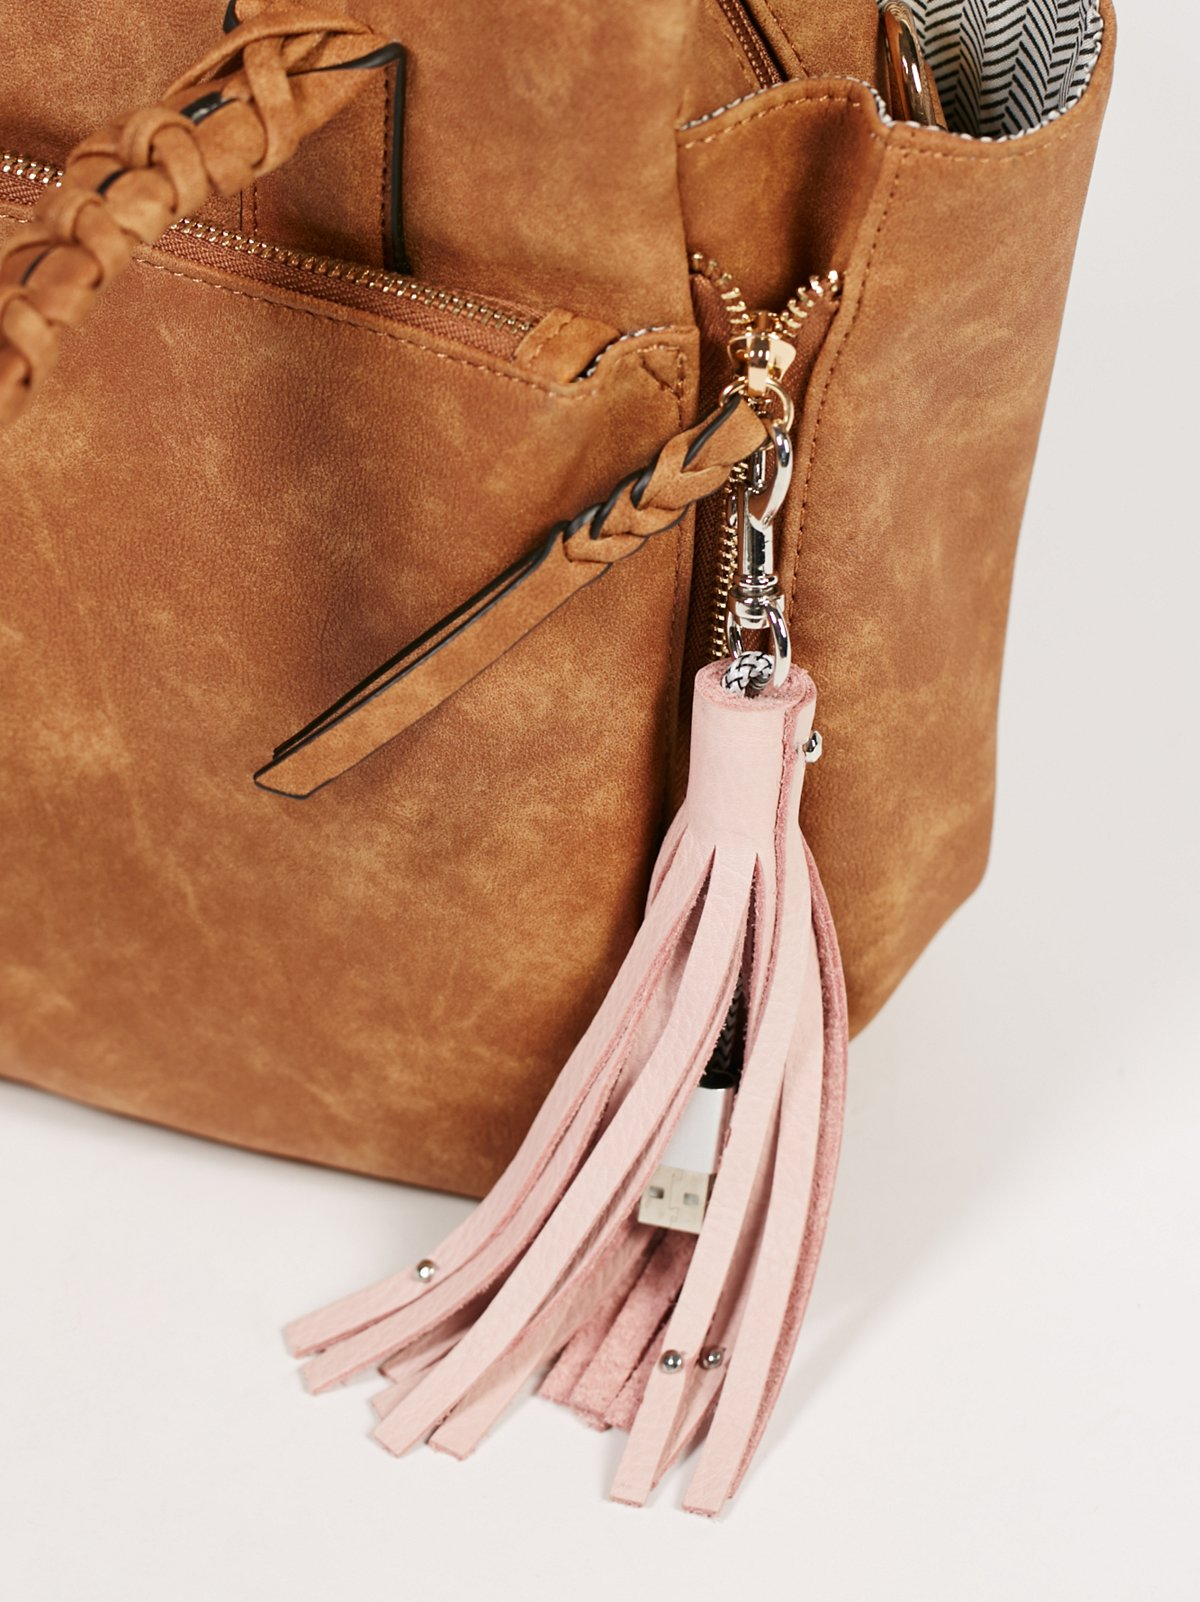 Leather Keychain iPhone Charger